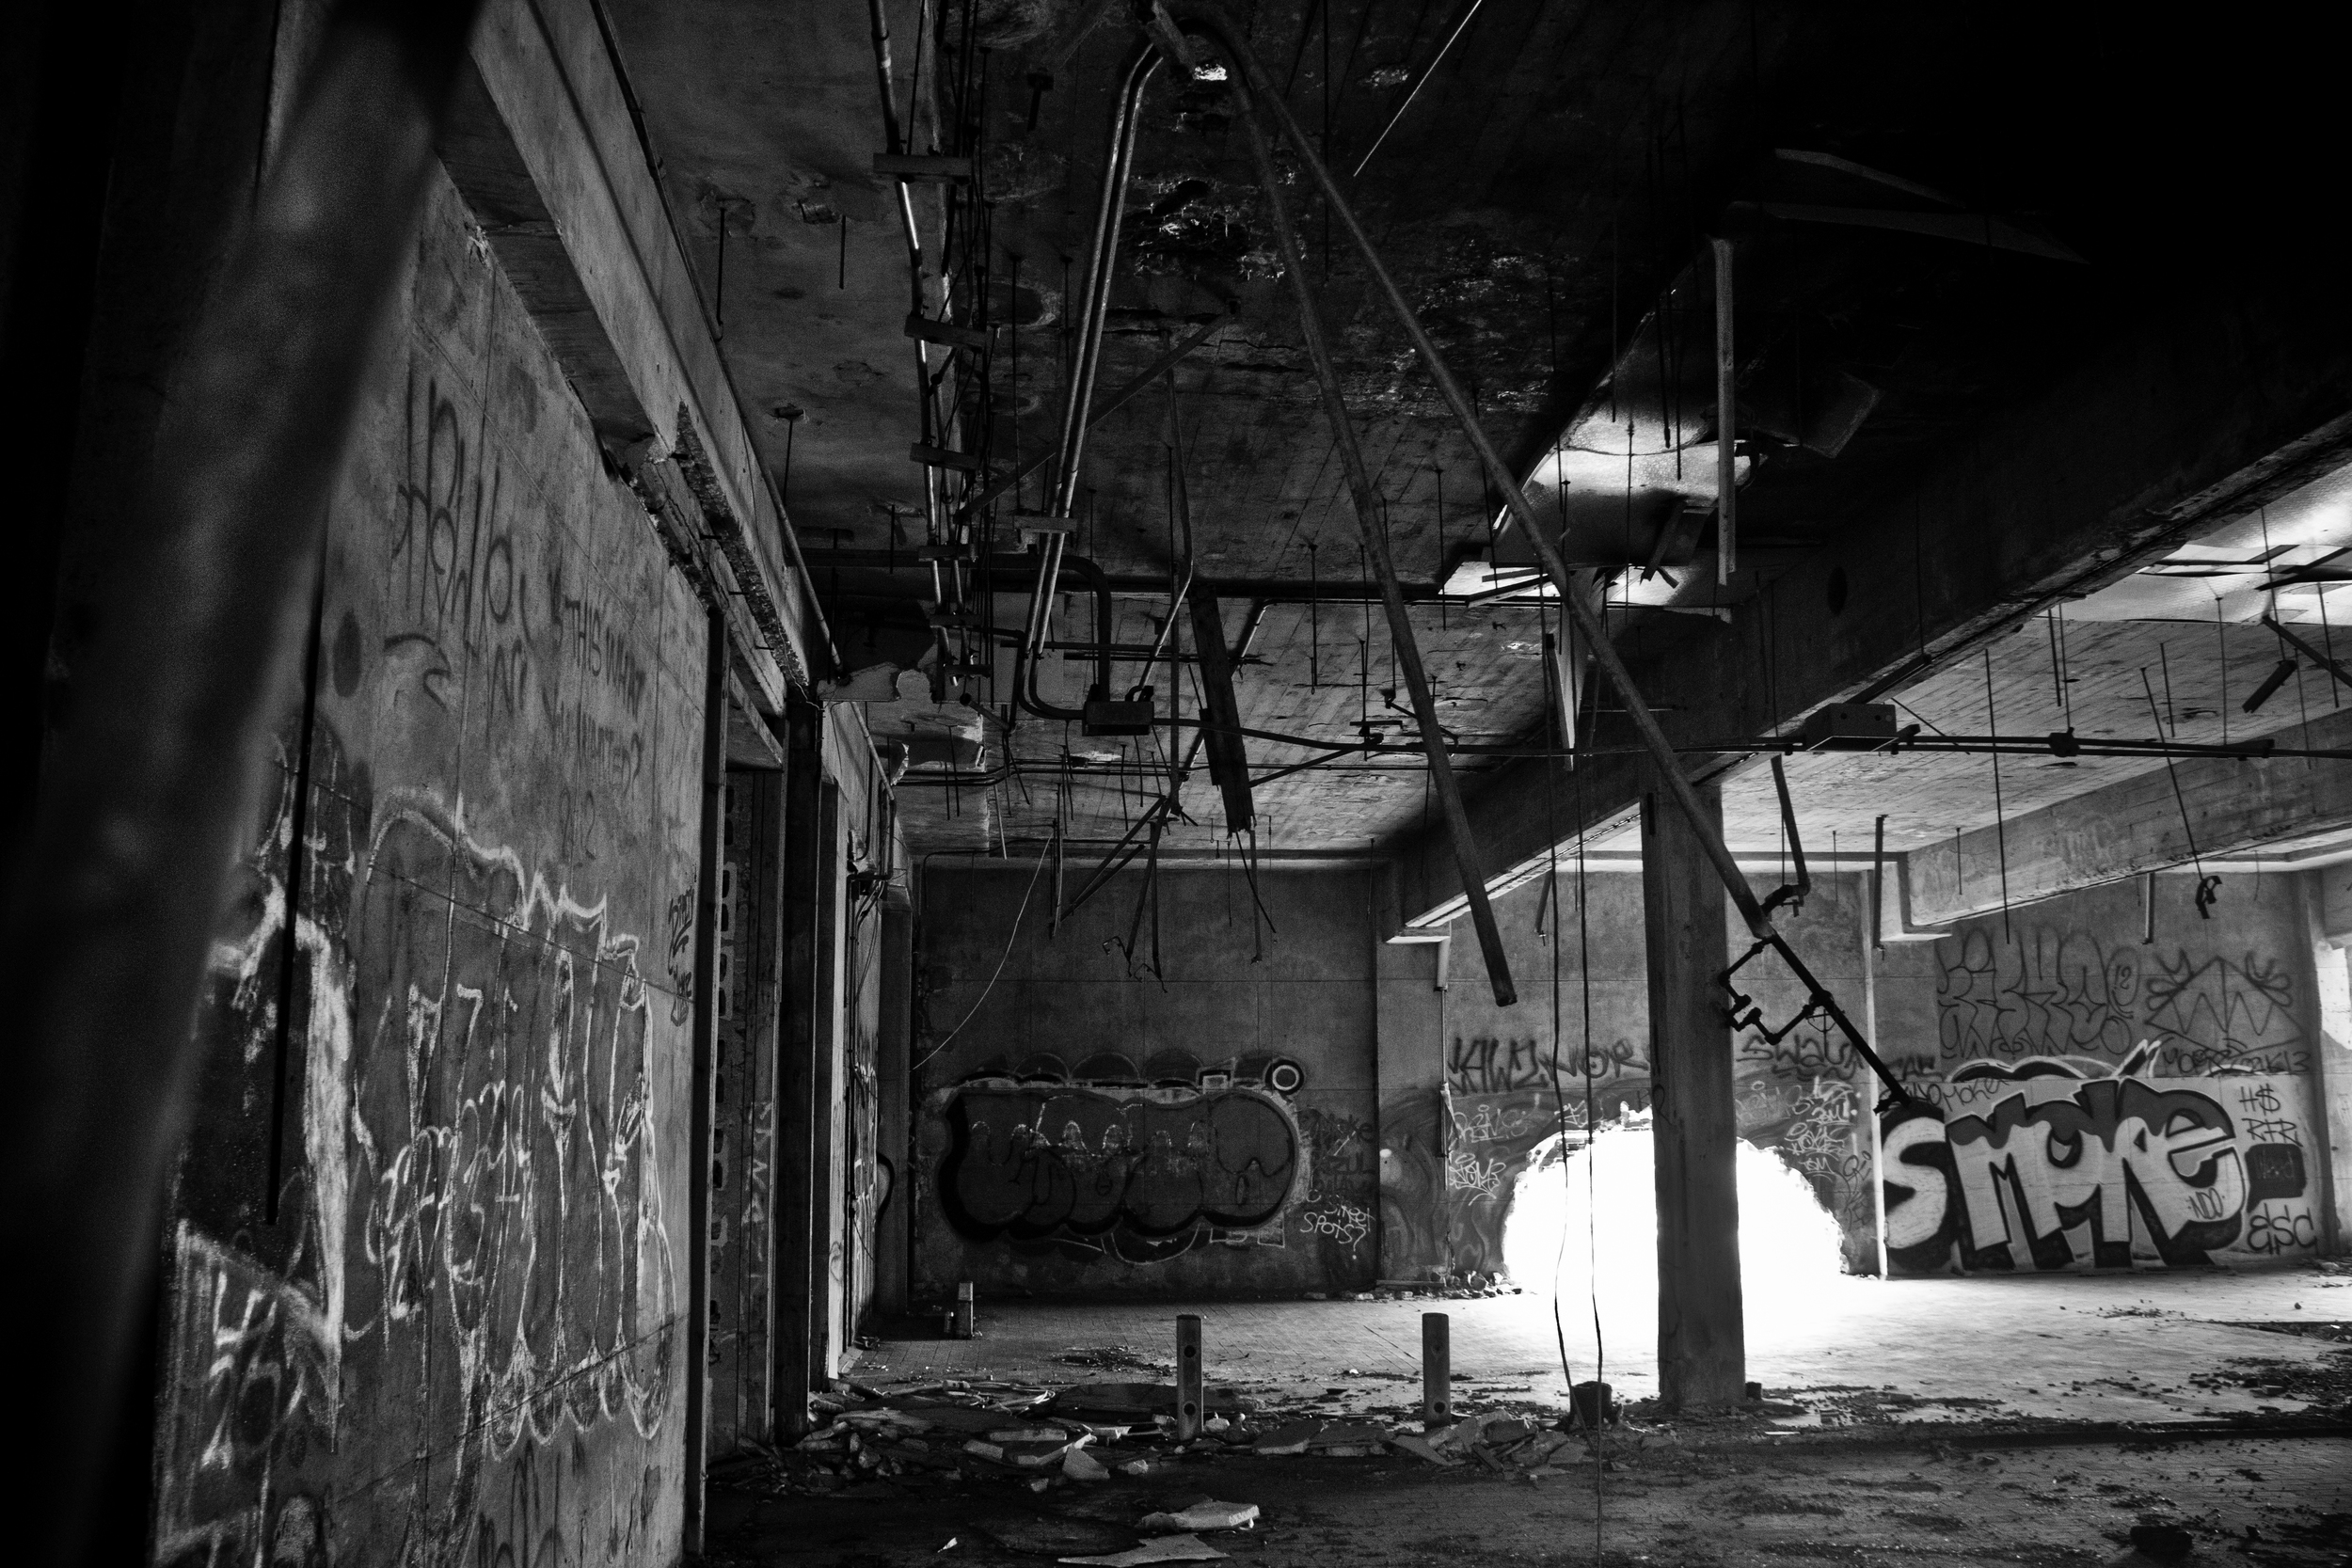 An abandoned warehouse lies gutted, a clear sign that scrappers have been here before.